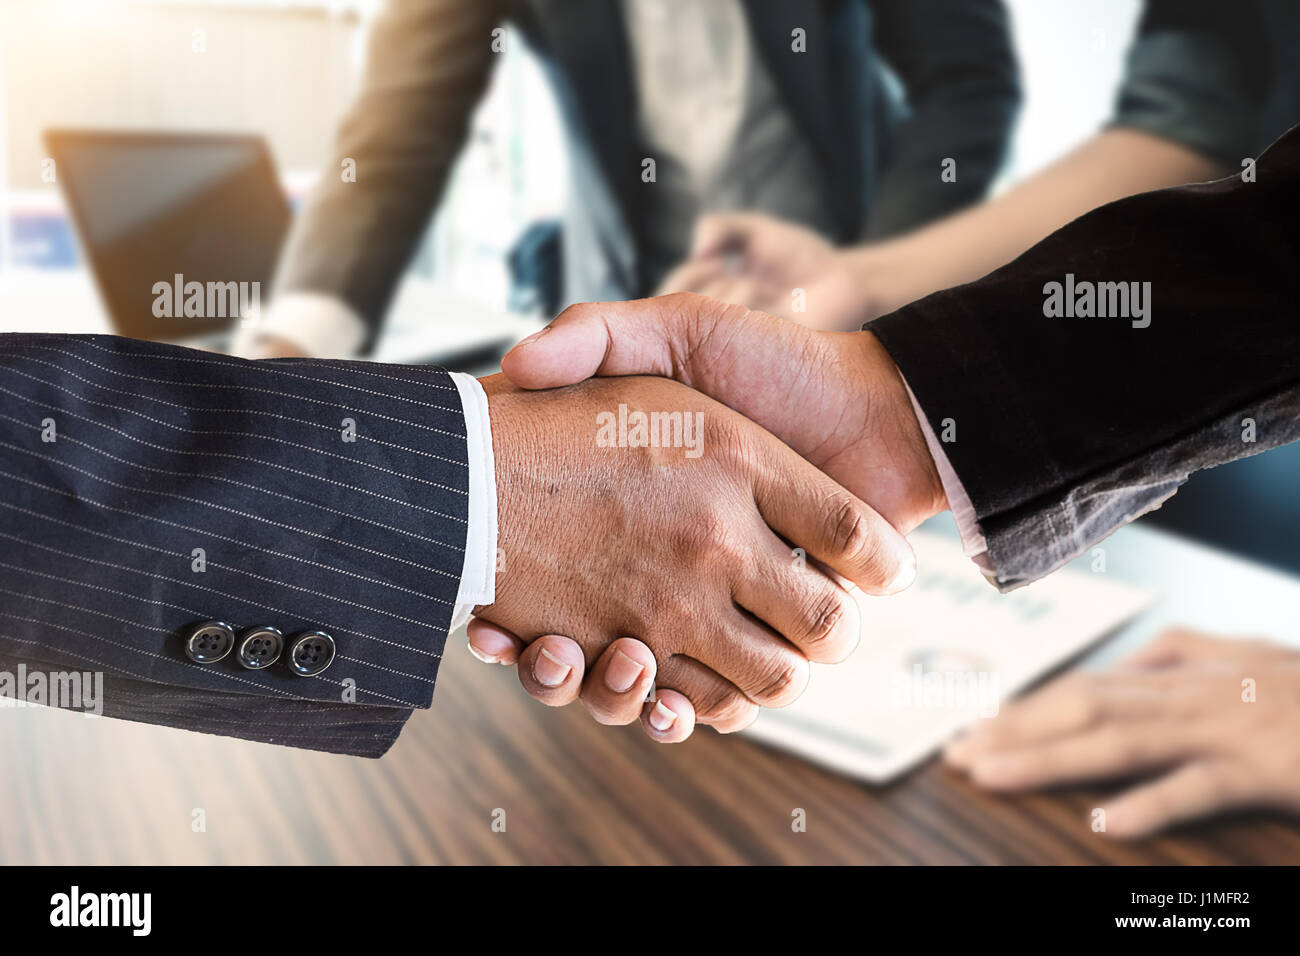 Acquisition concept,Handshake of businessmen on blur businesspeople background, vintage tone and greeting, dealing, - Stock Image